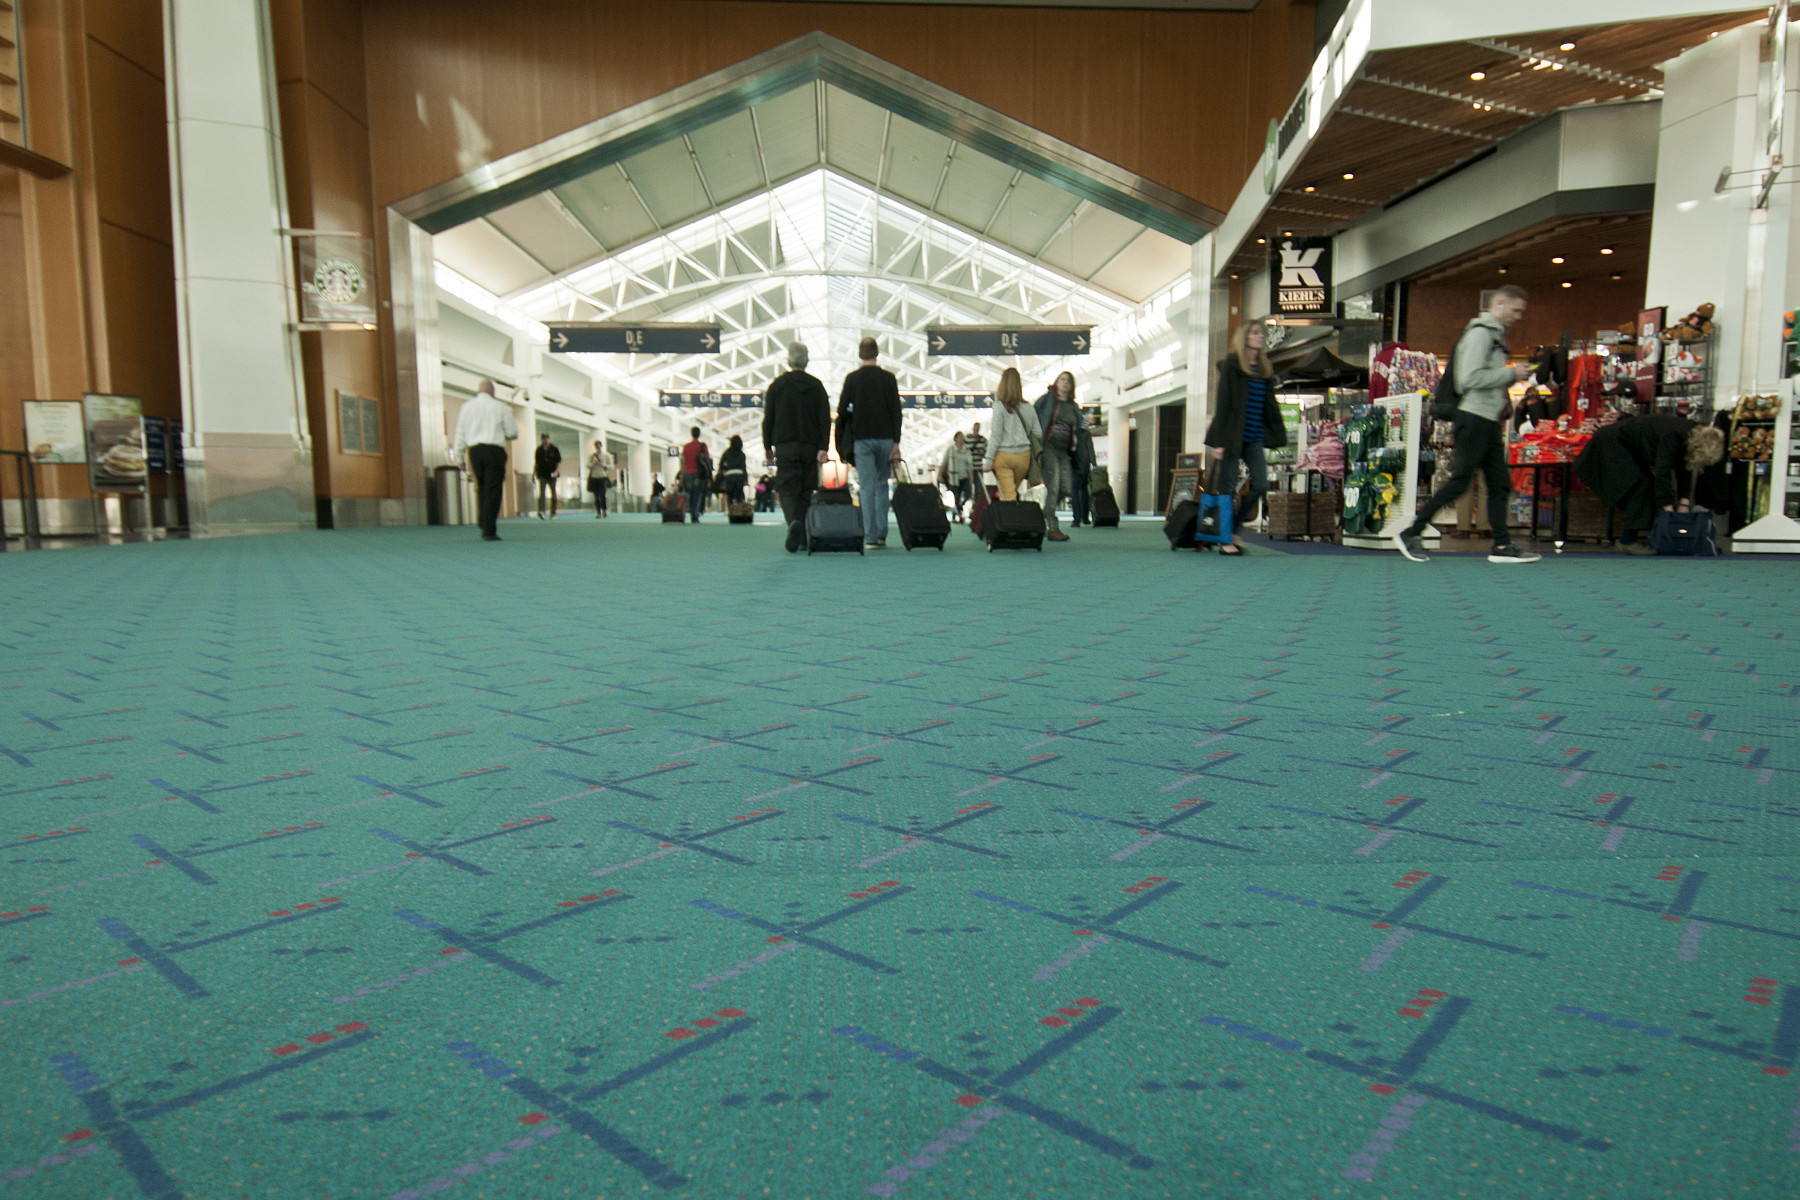 Airport Carpets From Portland To LAX LA Times